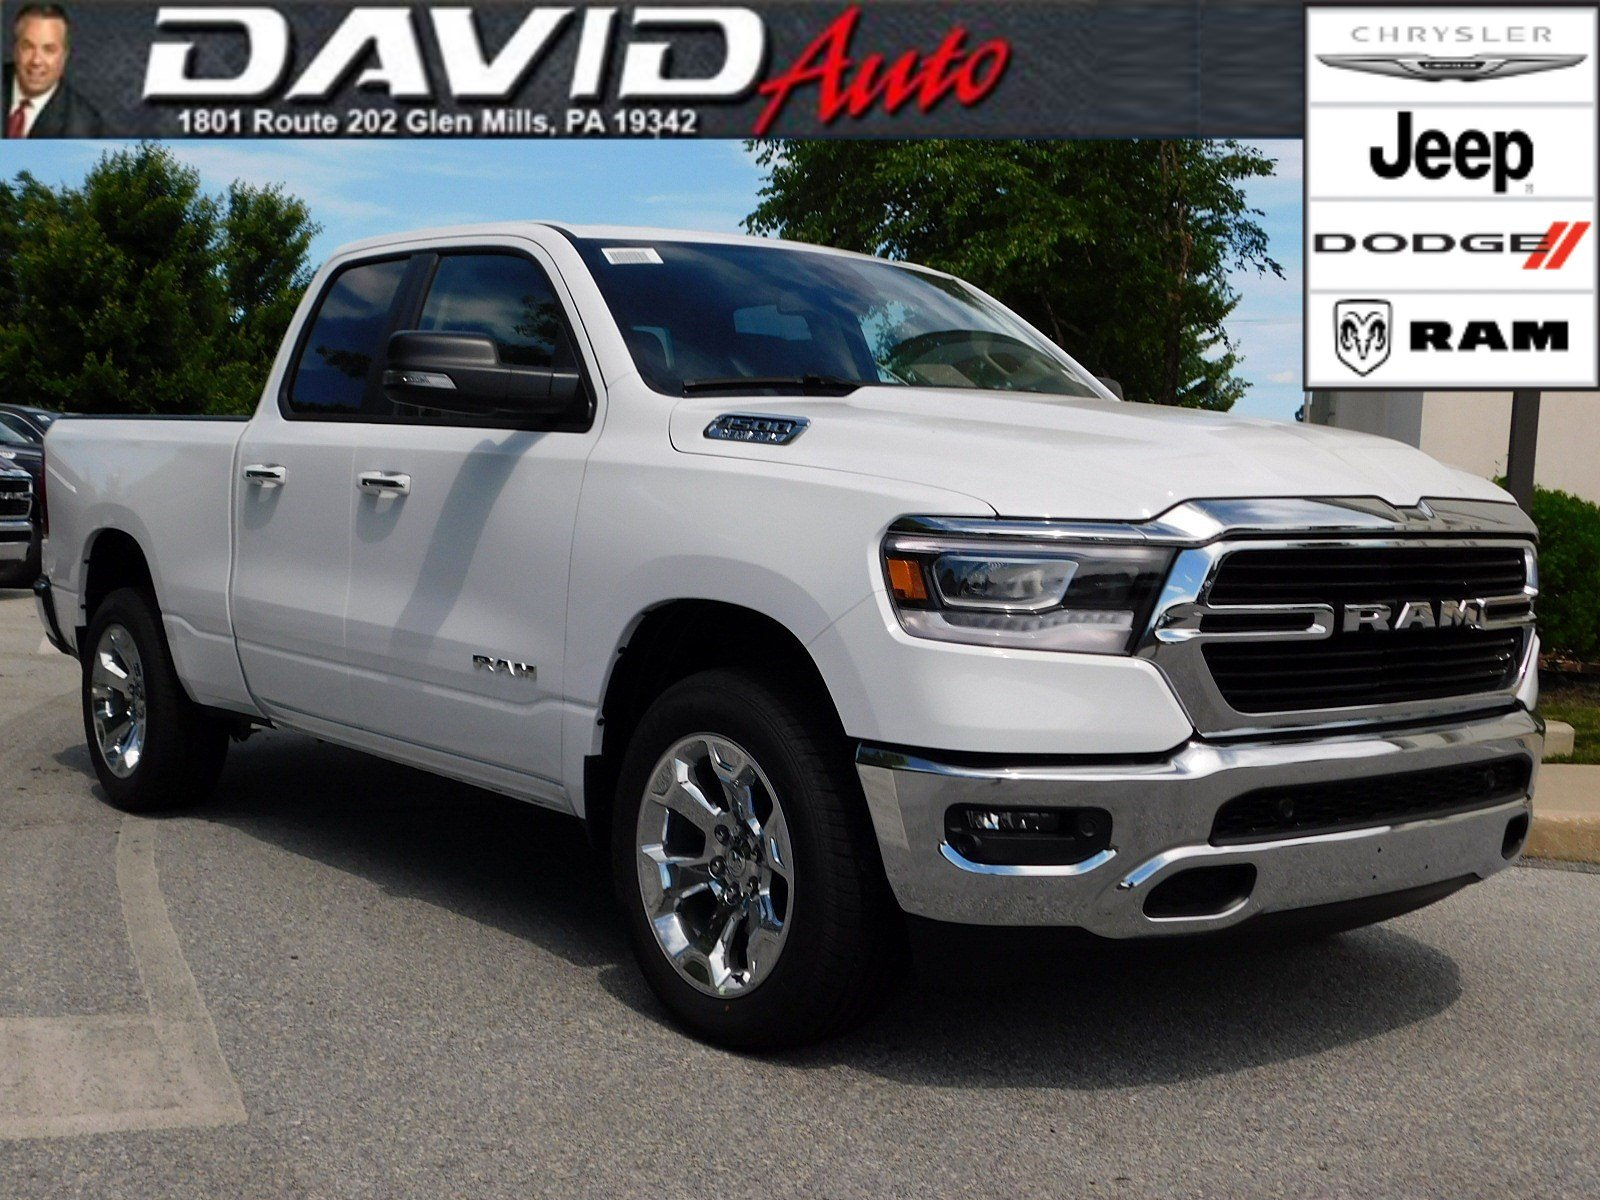 New 2019 Ram All 1500 Big Horn Lone Star Quad Cab In Glen Mills 2012 Dodge Airbag Light